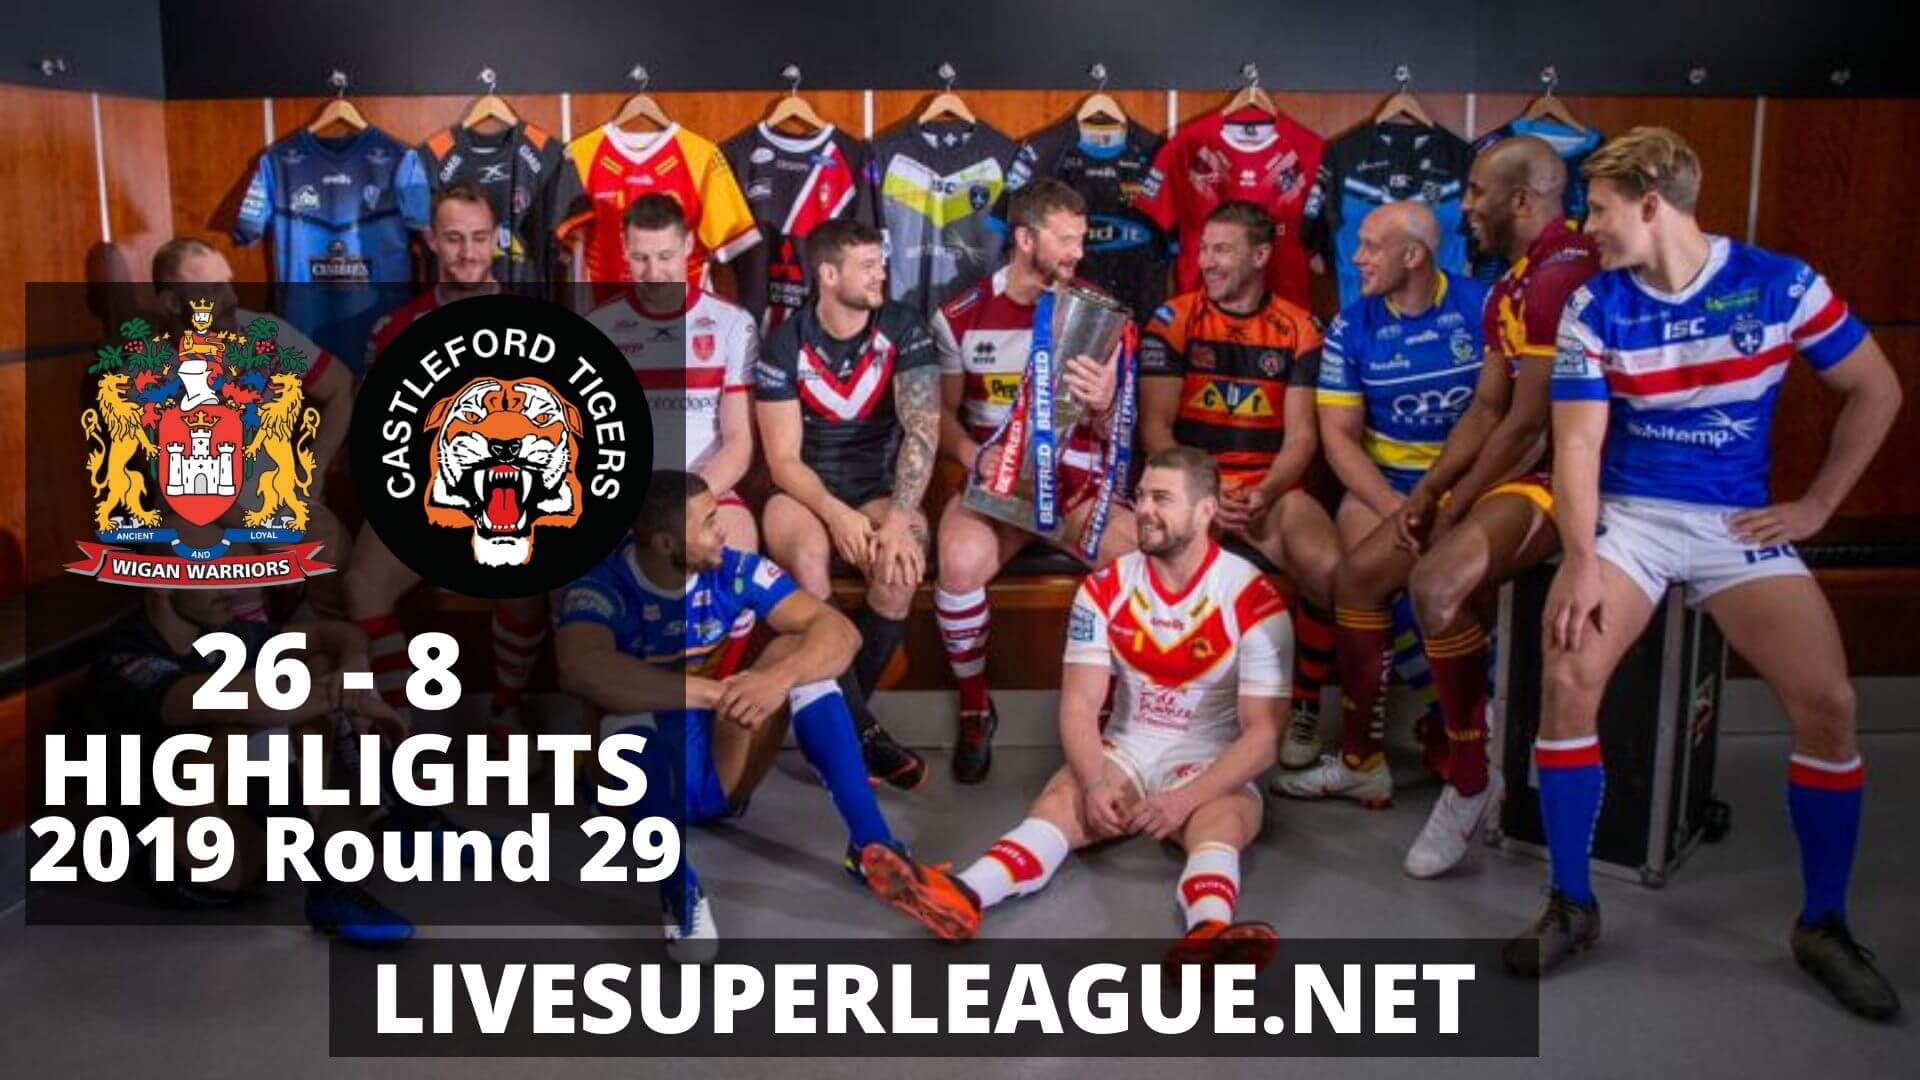 Wigan Warriors Vs Castleford Tigers Highlights 2019 Round 29